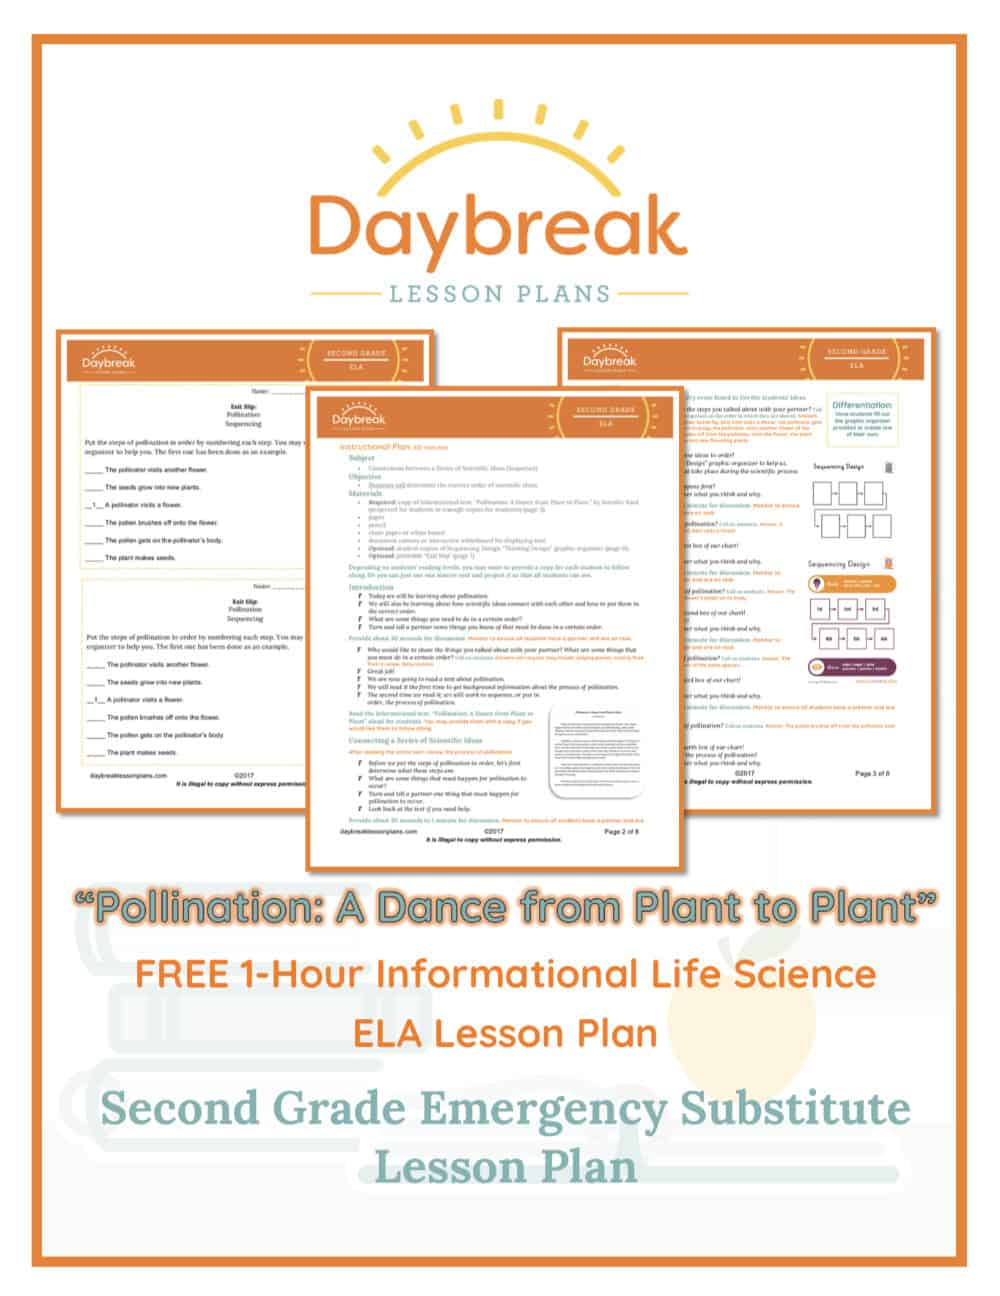 Illustration of the free 2nd Grade ELA lesson plan covers